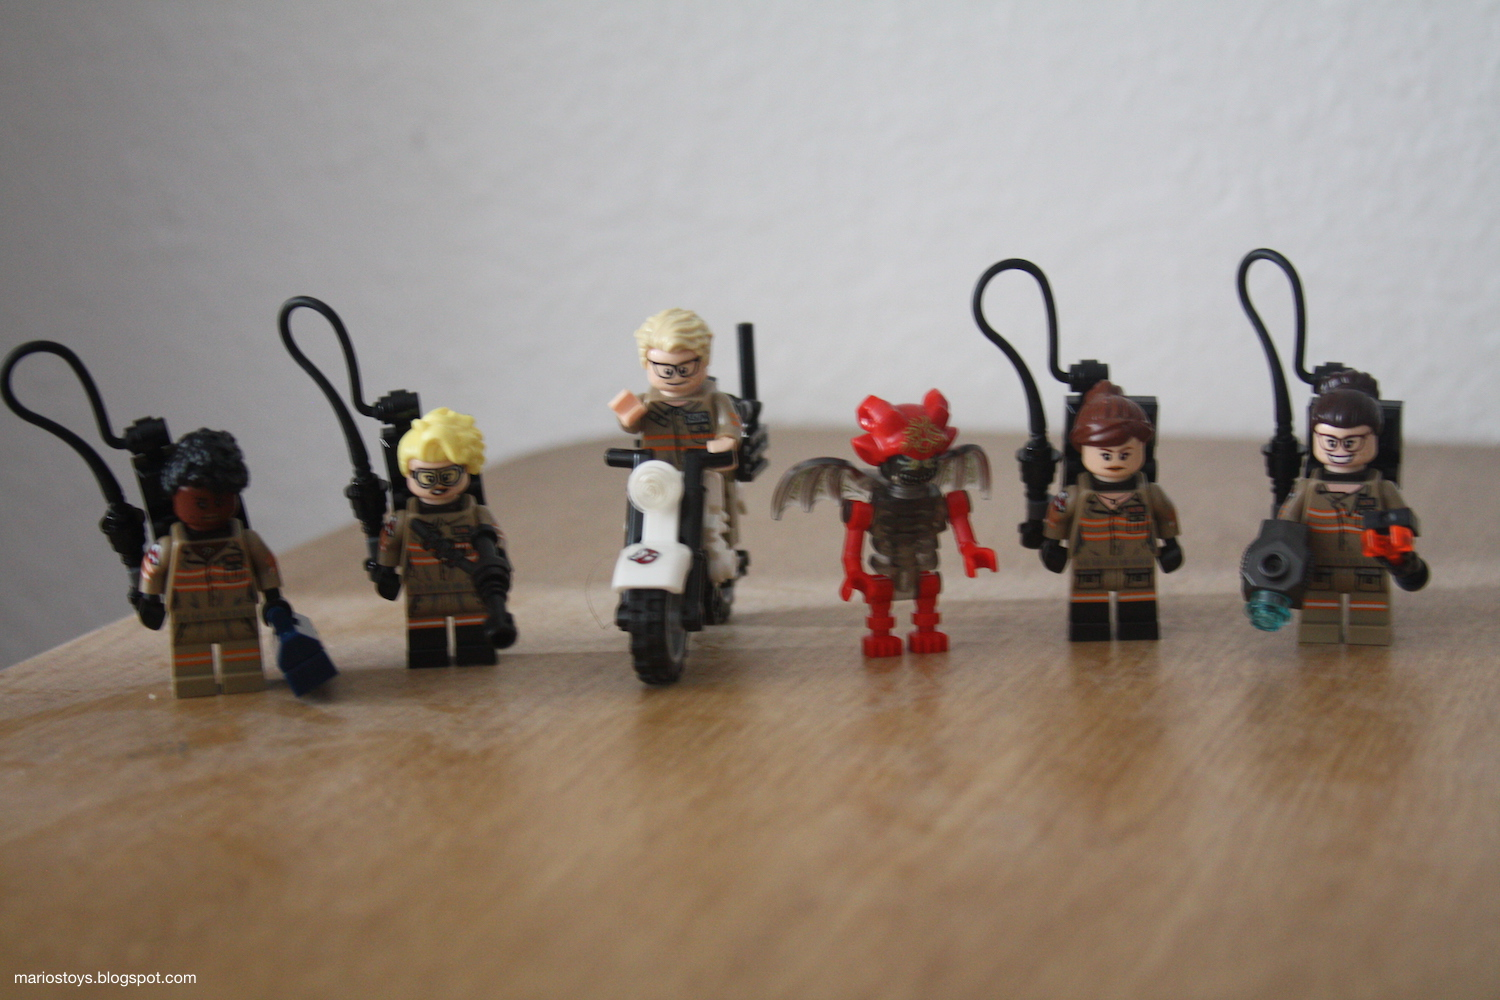 A Year Of Toys 63 Lego Ghostbusters Ecto 1 2 75828 Ampamp The Minifigures Naturally Include All Team As Well Kevin There Is Also Mayhem Ghost That They Fight In Theater Human Characters